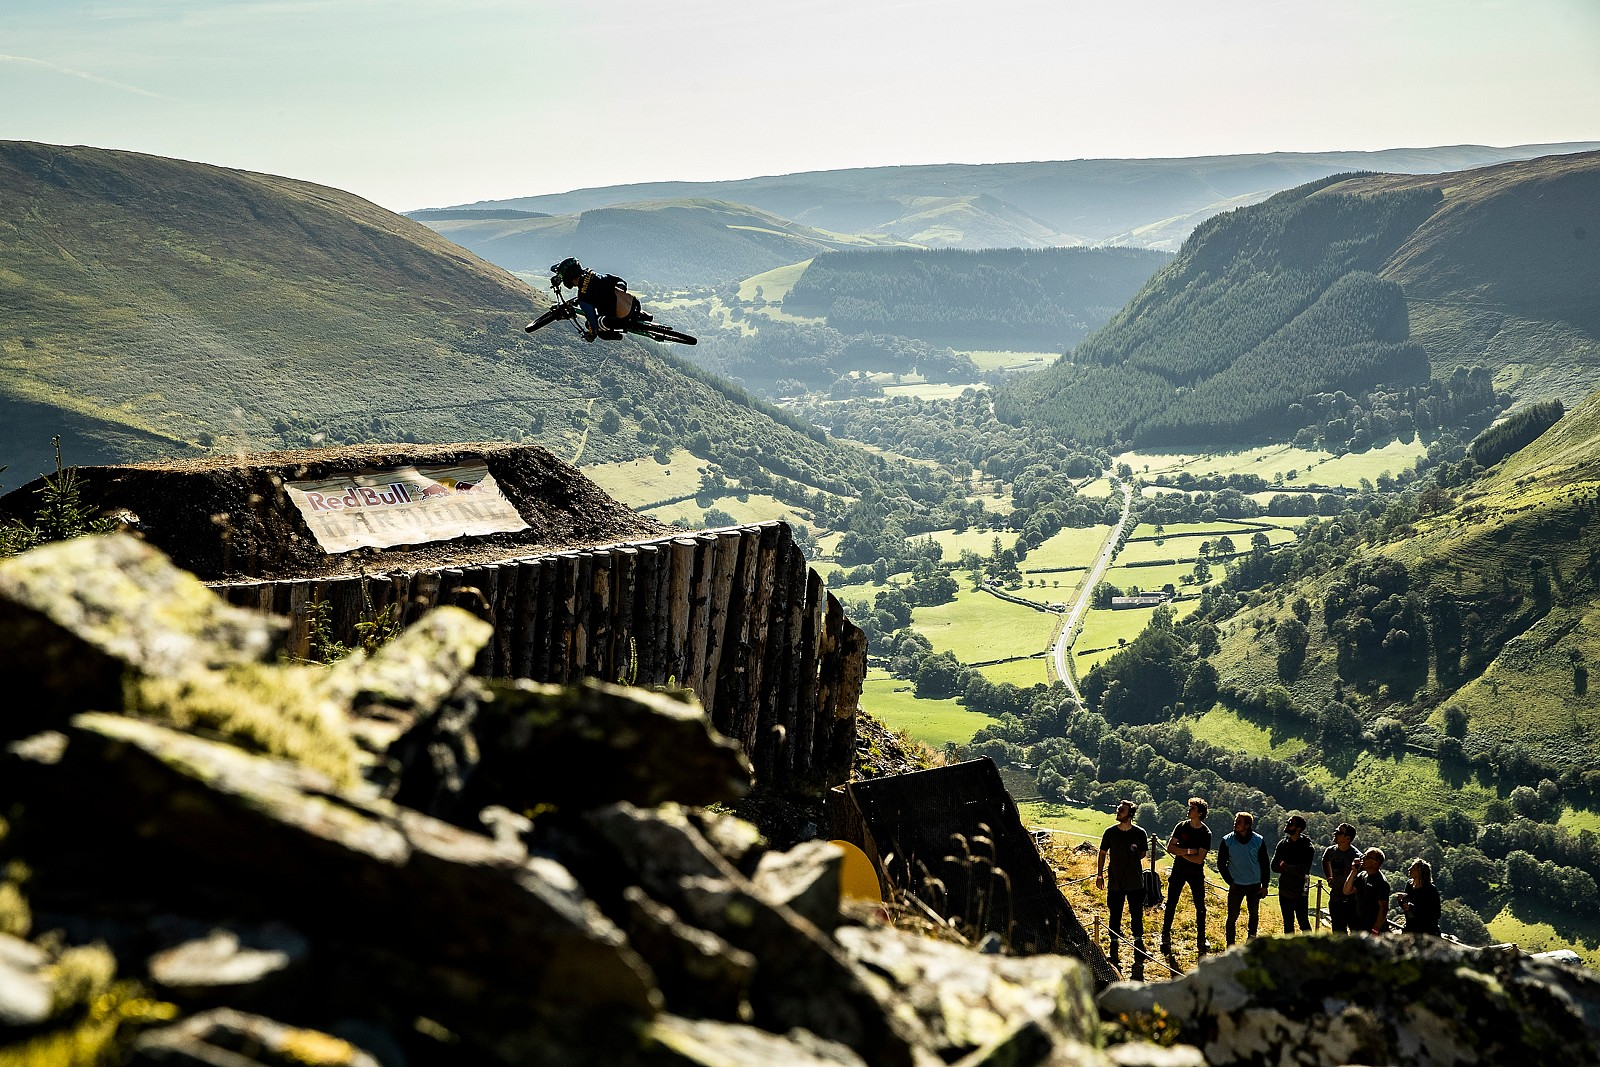 Dave McMillan - Red Bull Hardline in Photos - Mountain Biking Pictures - Vital MTB